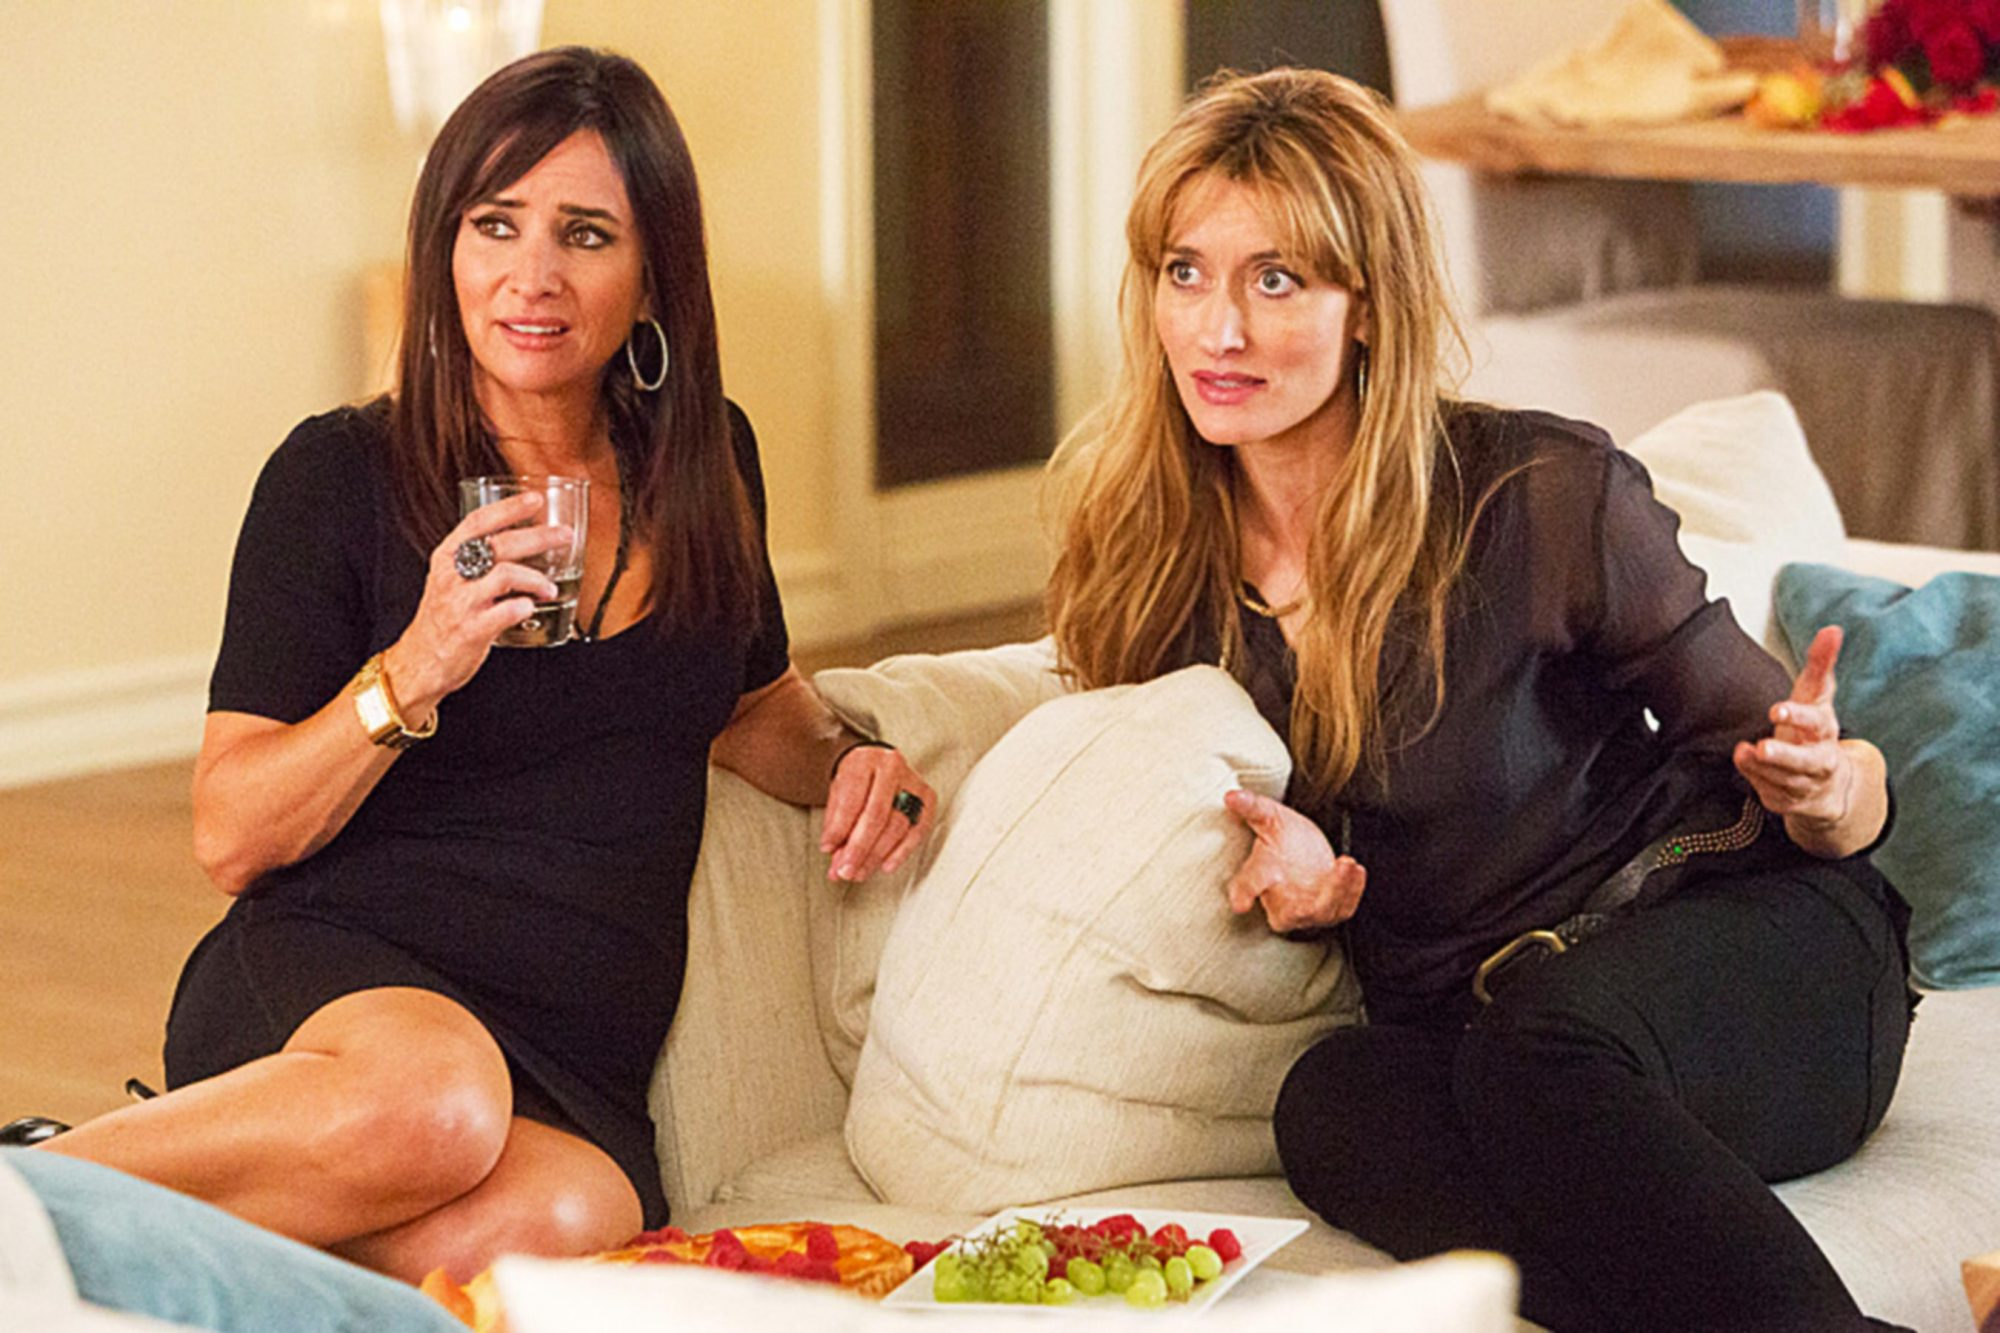 CALIFORNICATION, (from left): Pamela Adlon, Natascha McElhone, 'Dinner with Friends', (Season 7,